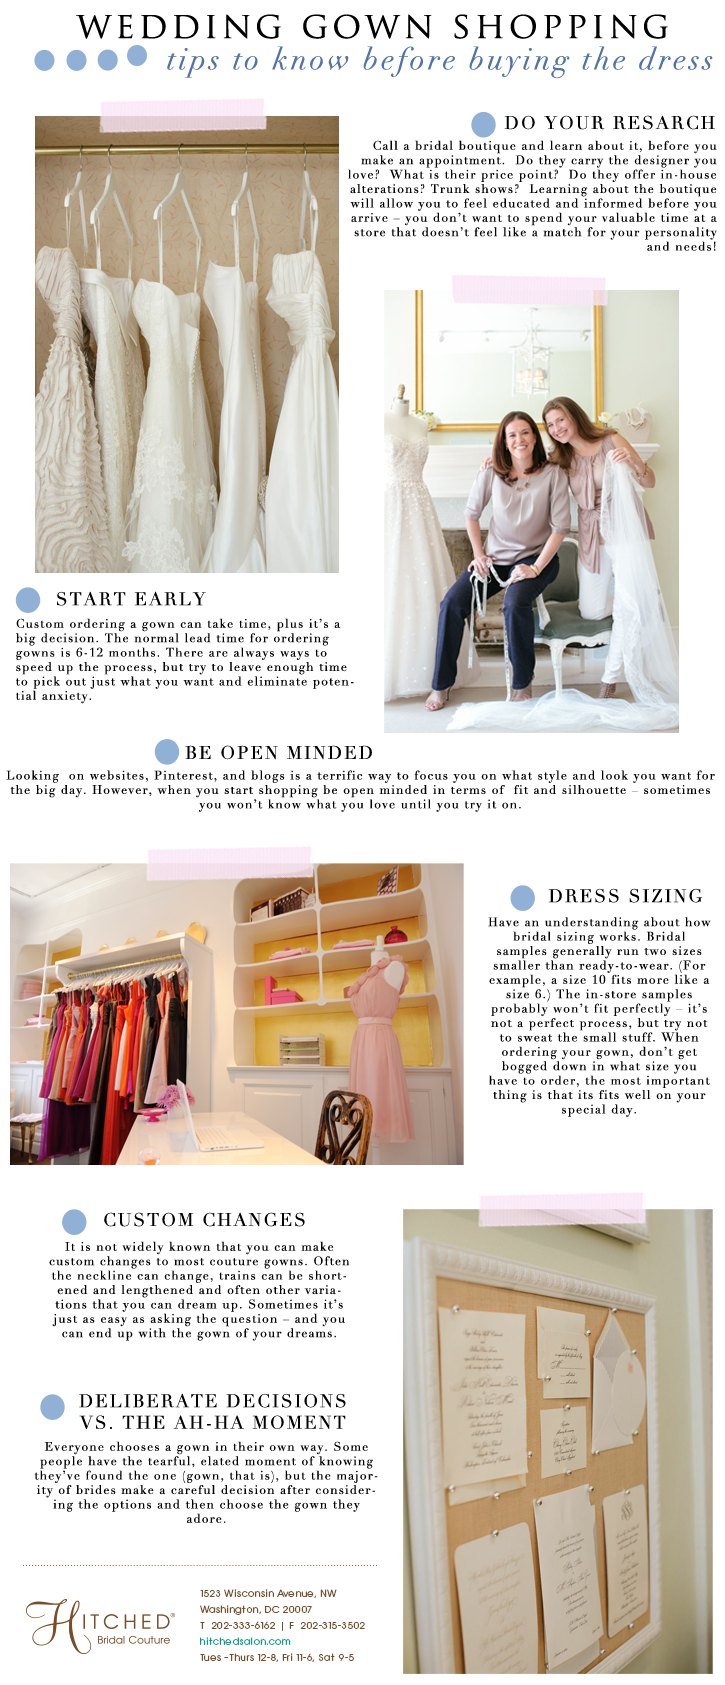 Wedding-Dress-Shopping-Tips1